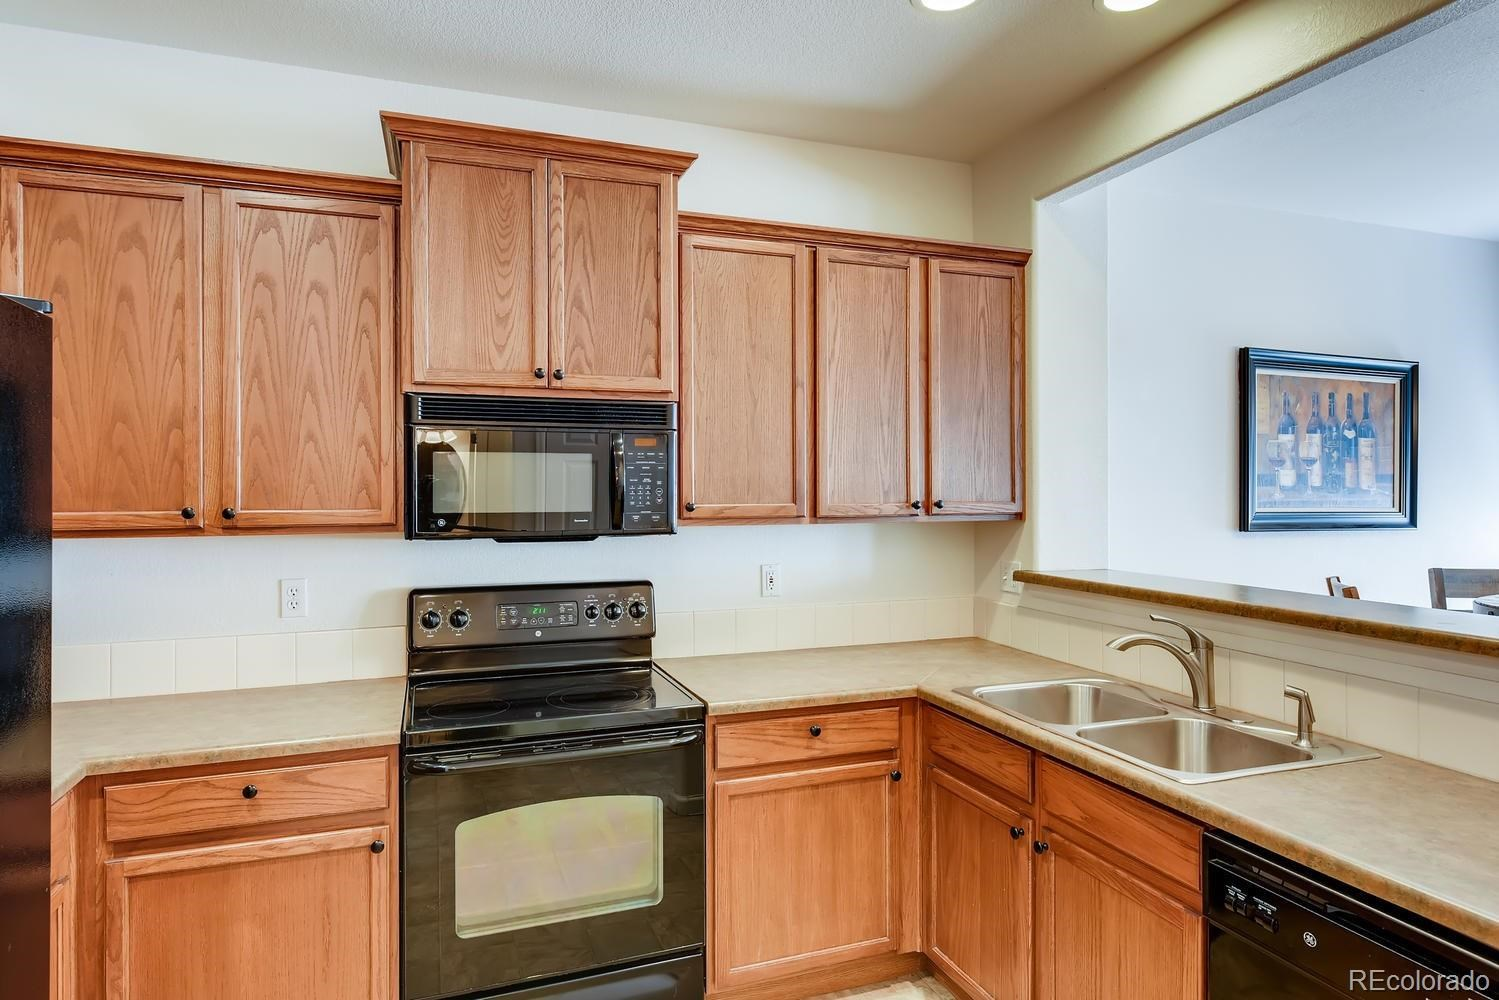 MLS# 8385408 - 4 - 1255 Timber Run Heights, Monument, CO 80132